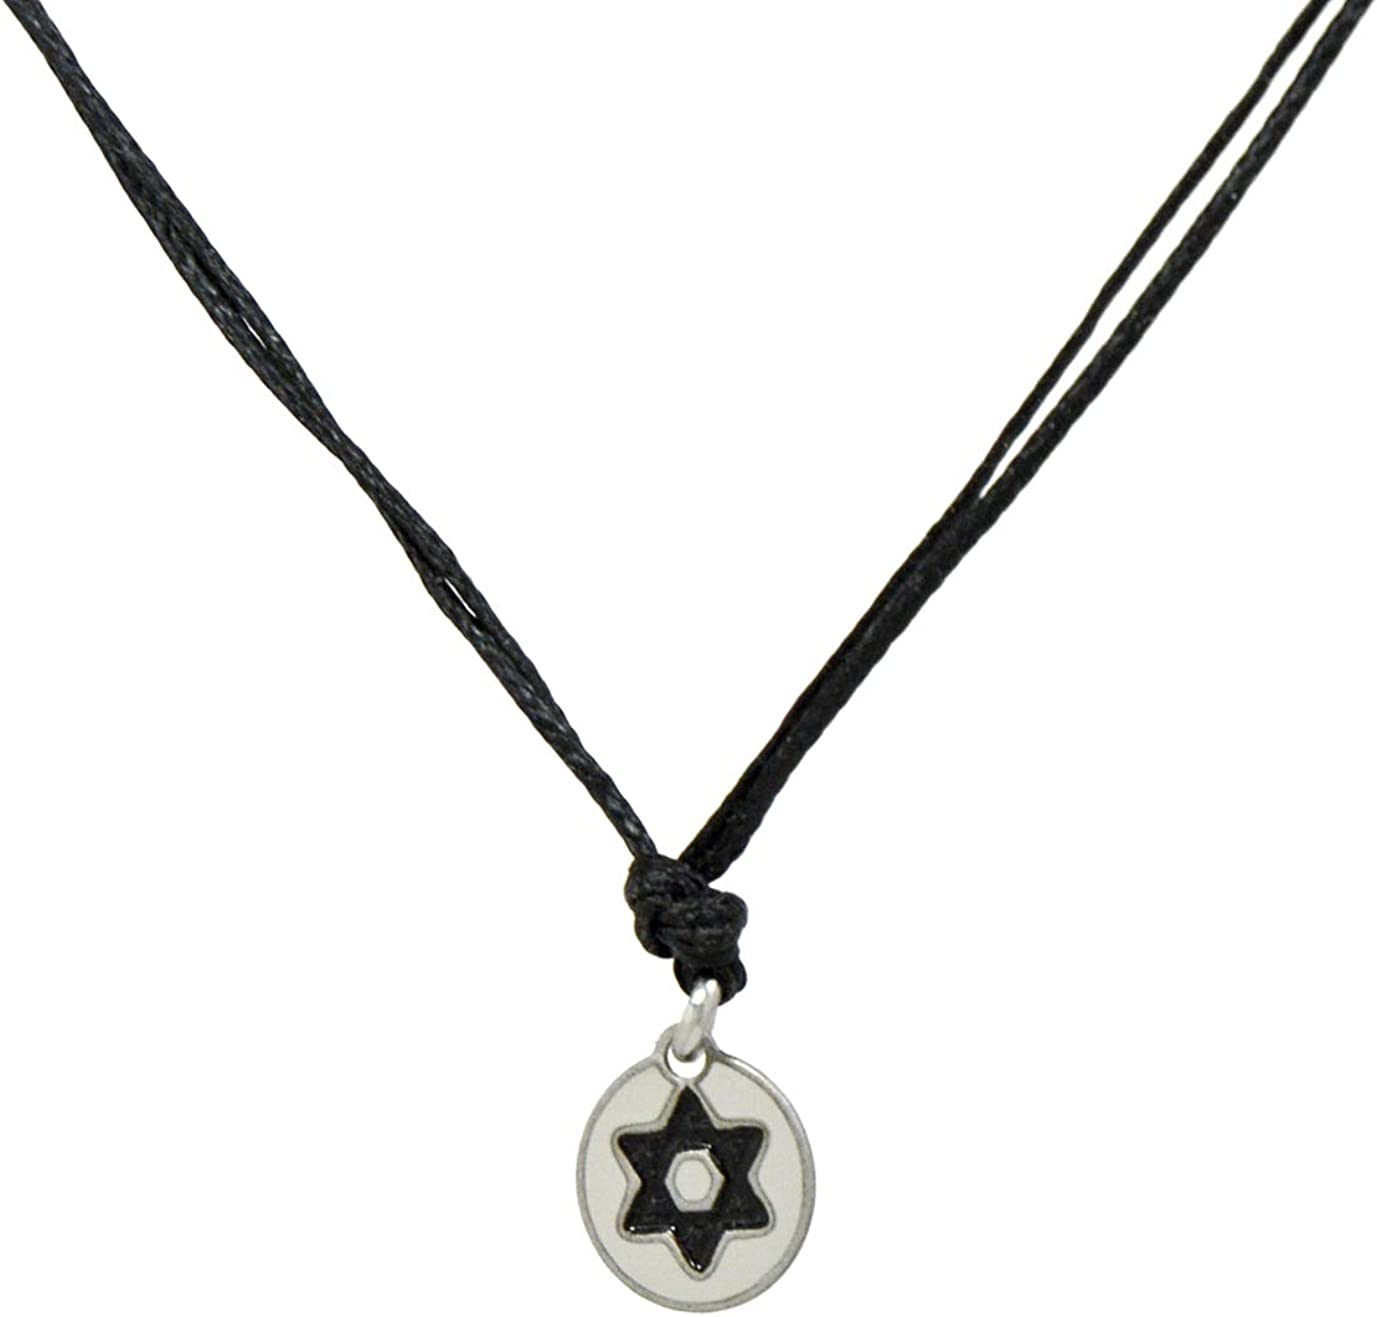 Faux Double Suede Cord Choker Necklace with Silver Tone Ring Pendant 8C